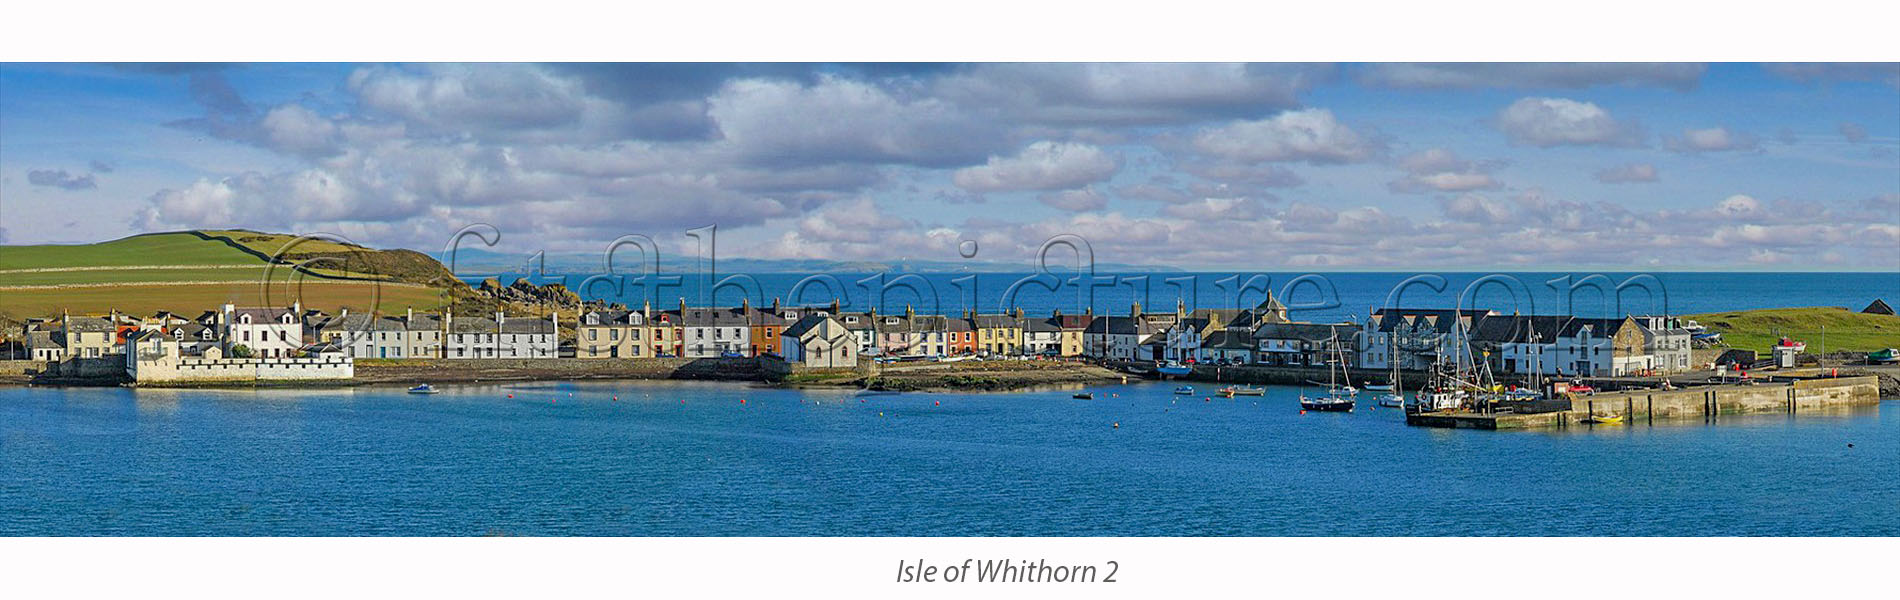 isle_of_whithorn_from_braefoot_1.jpg